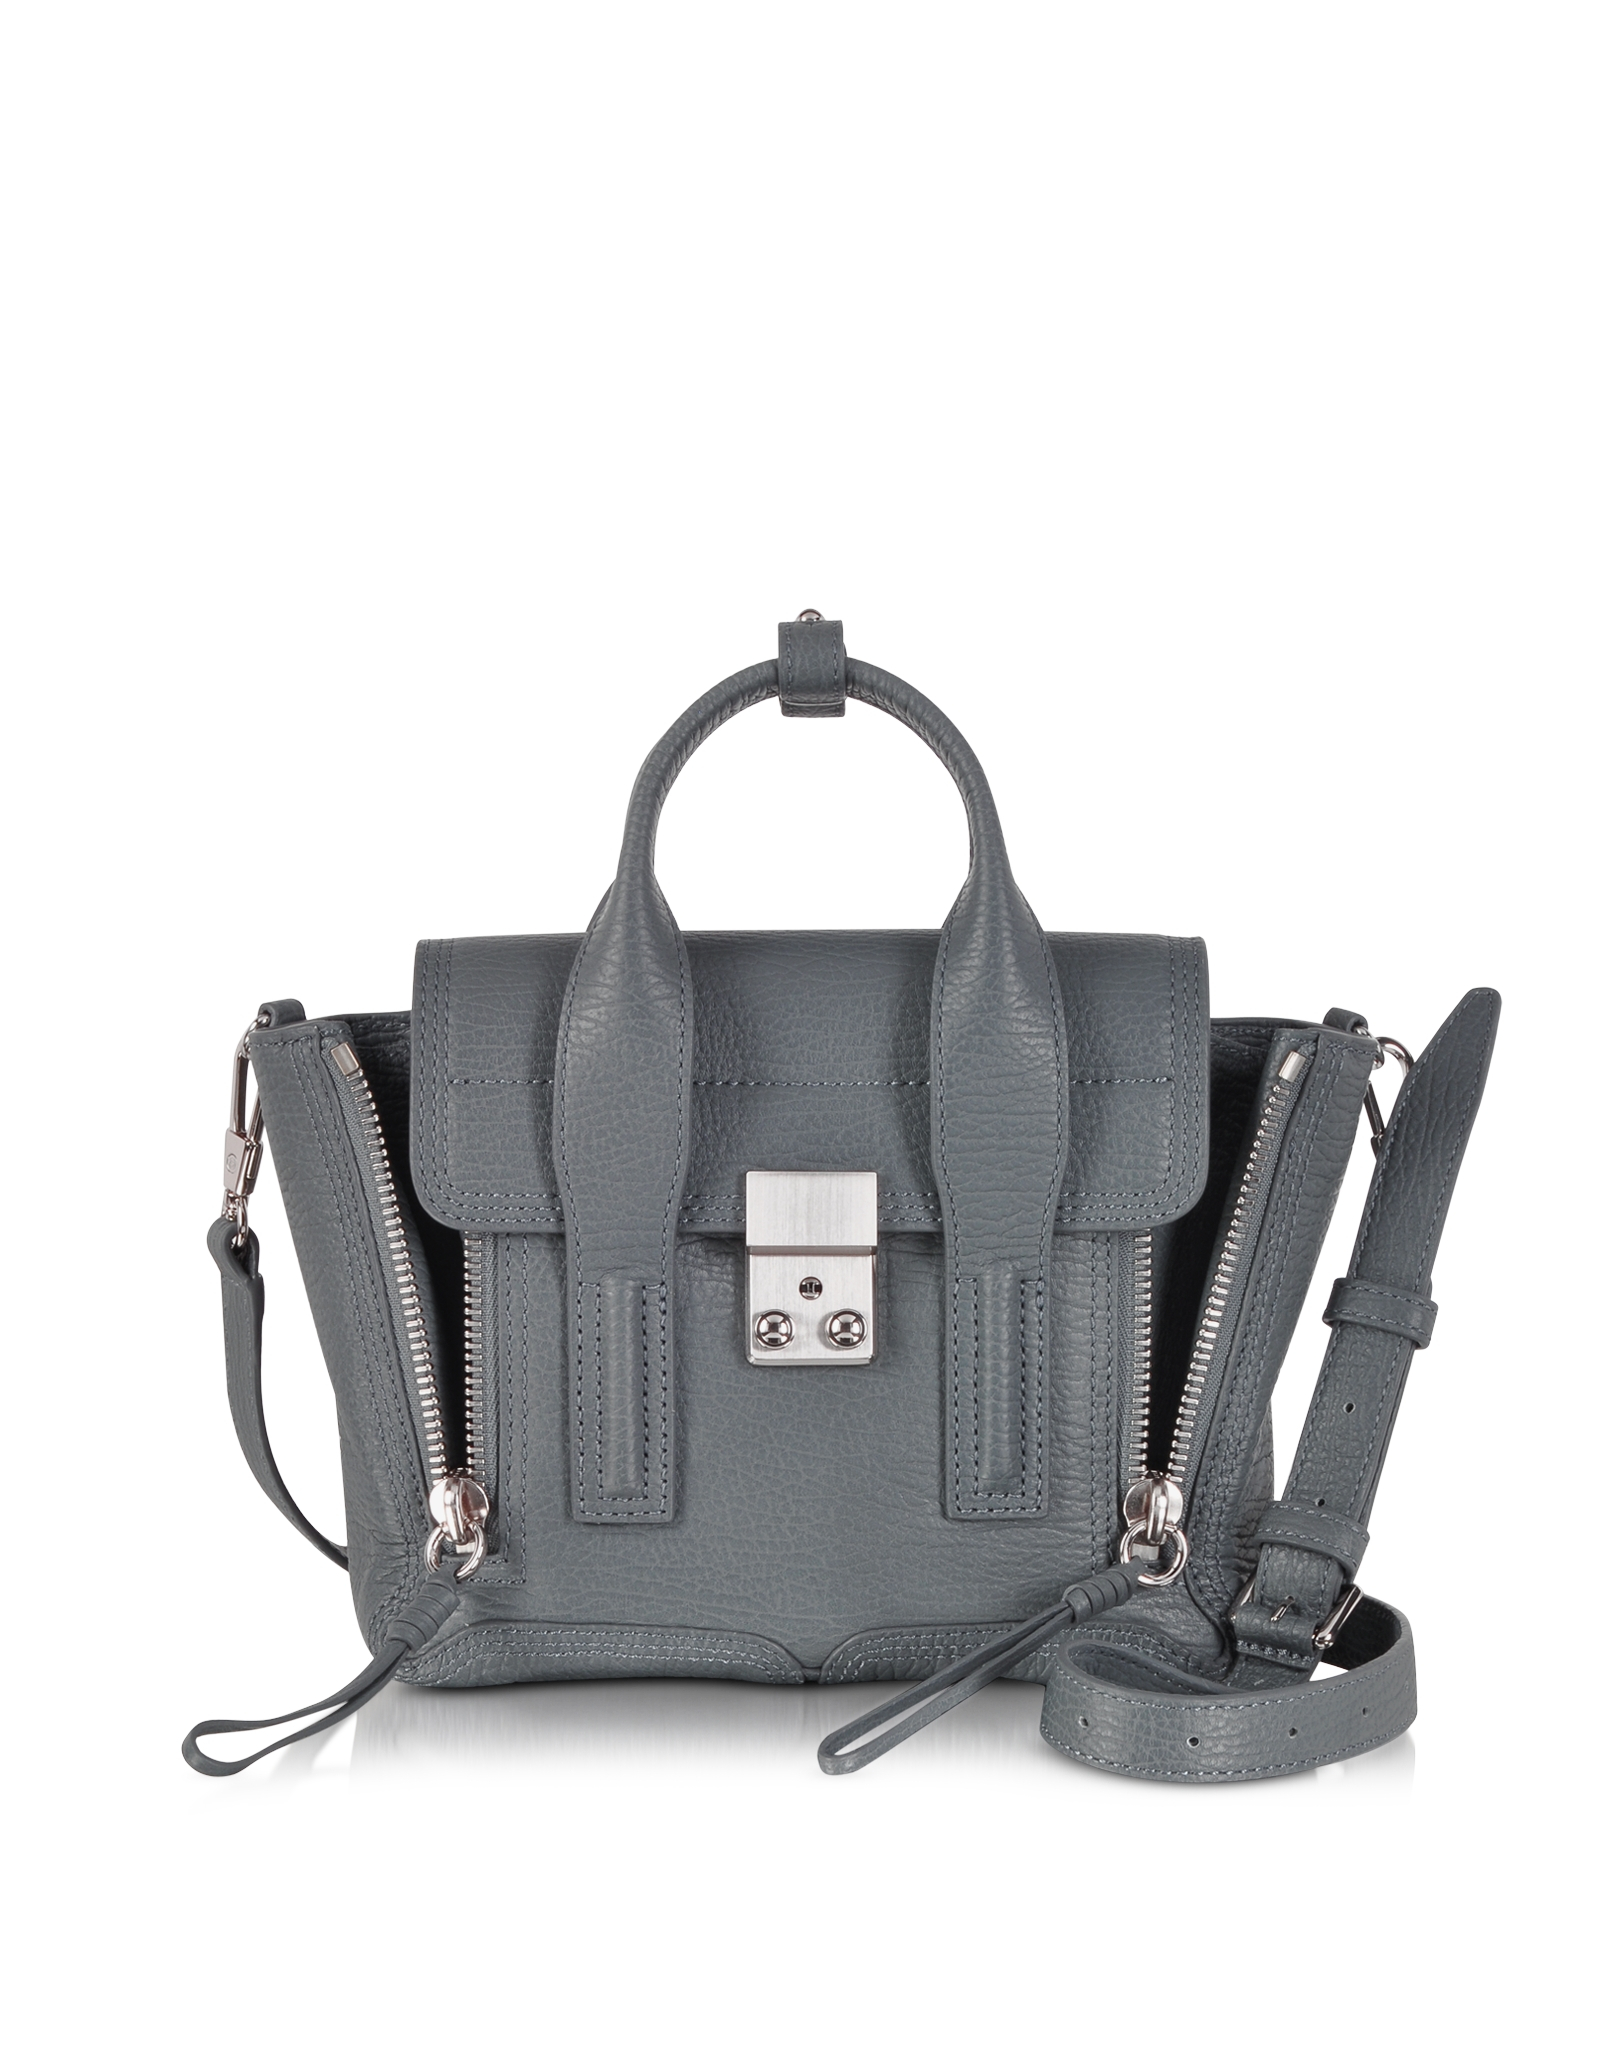 3.1 Phillip Lim Woman Mini Floral-print Patent-leather Shoulder Bag Black Size 3.1 Phillip Lim Good Selling Outlet Cheapest Price Perfect Online Outlet Low Price Fee Shipping CwUpLi